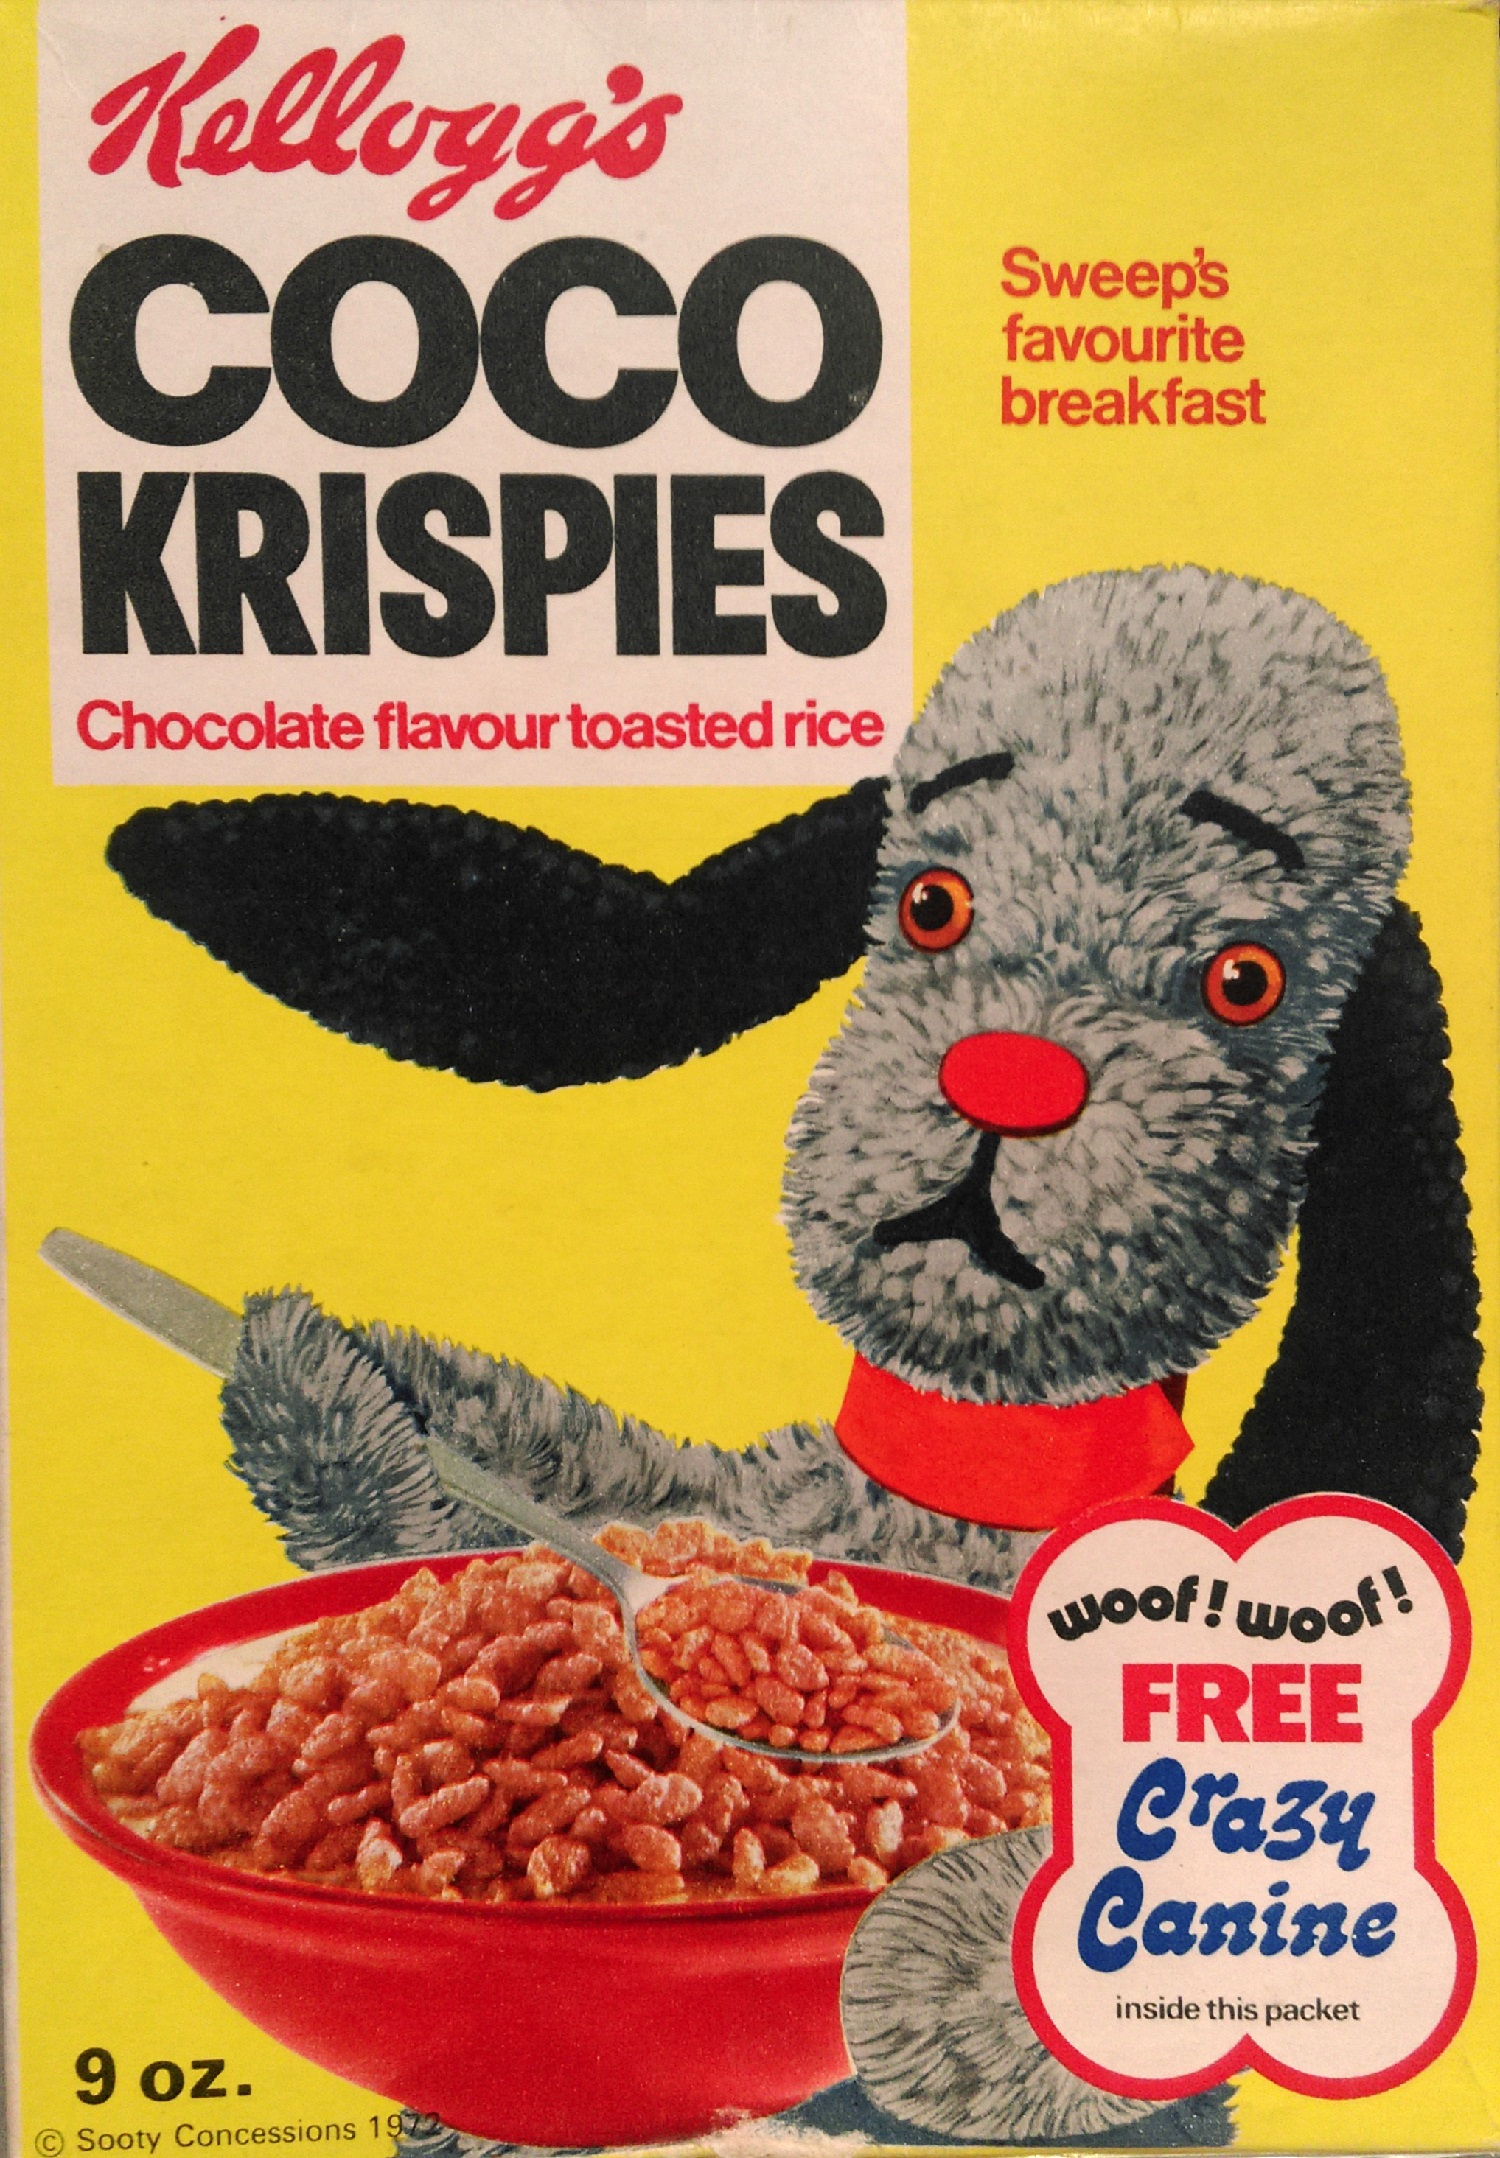 Kellog's Coco Krispies packet from 1972, with a picture of Sweep the poodle on the front. On the back is information about free